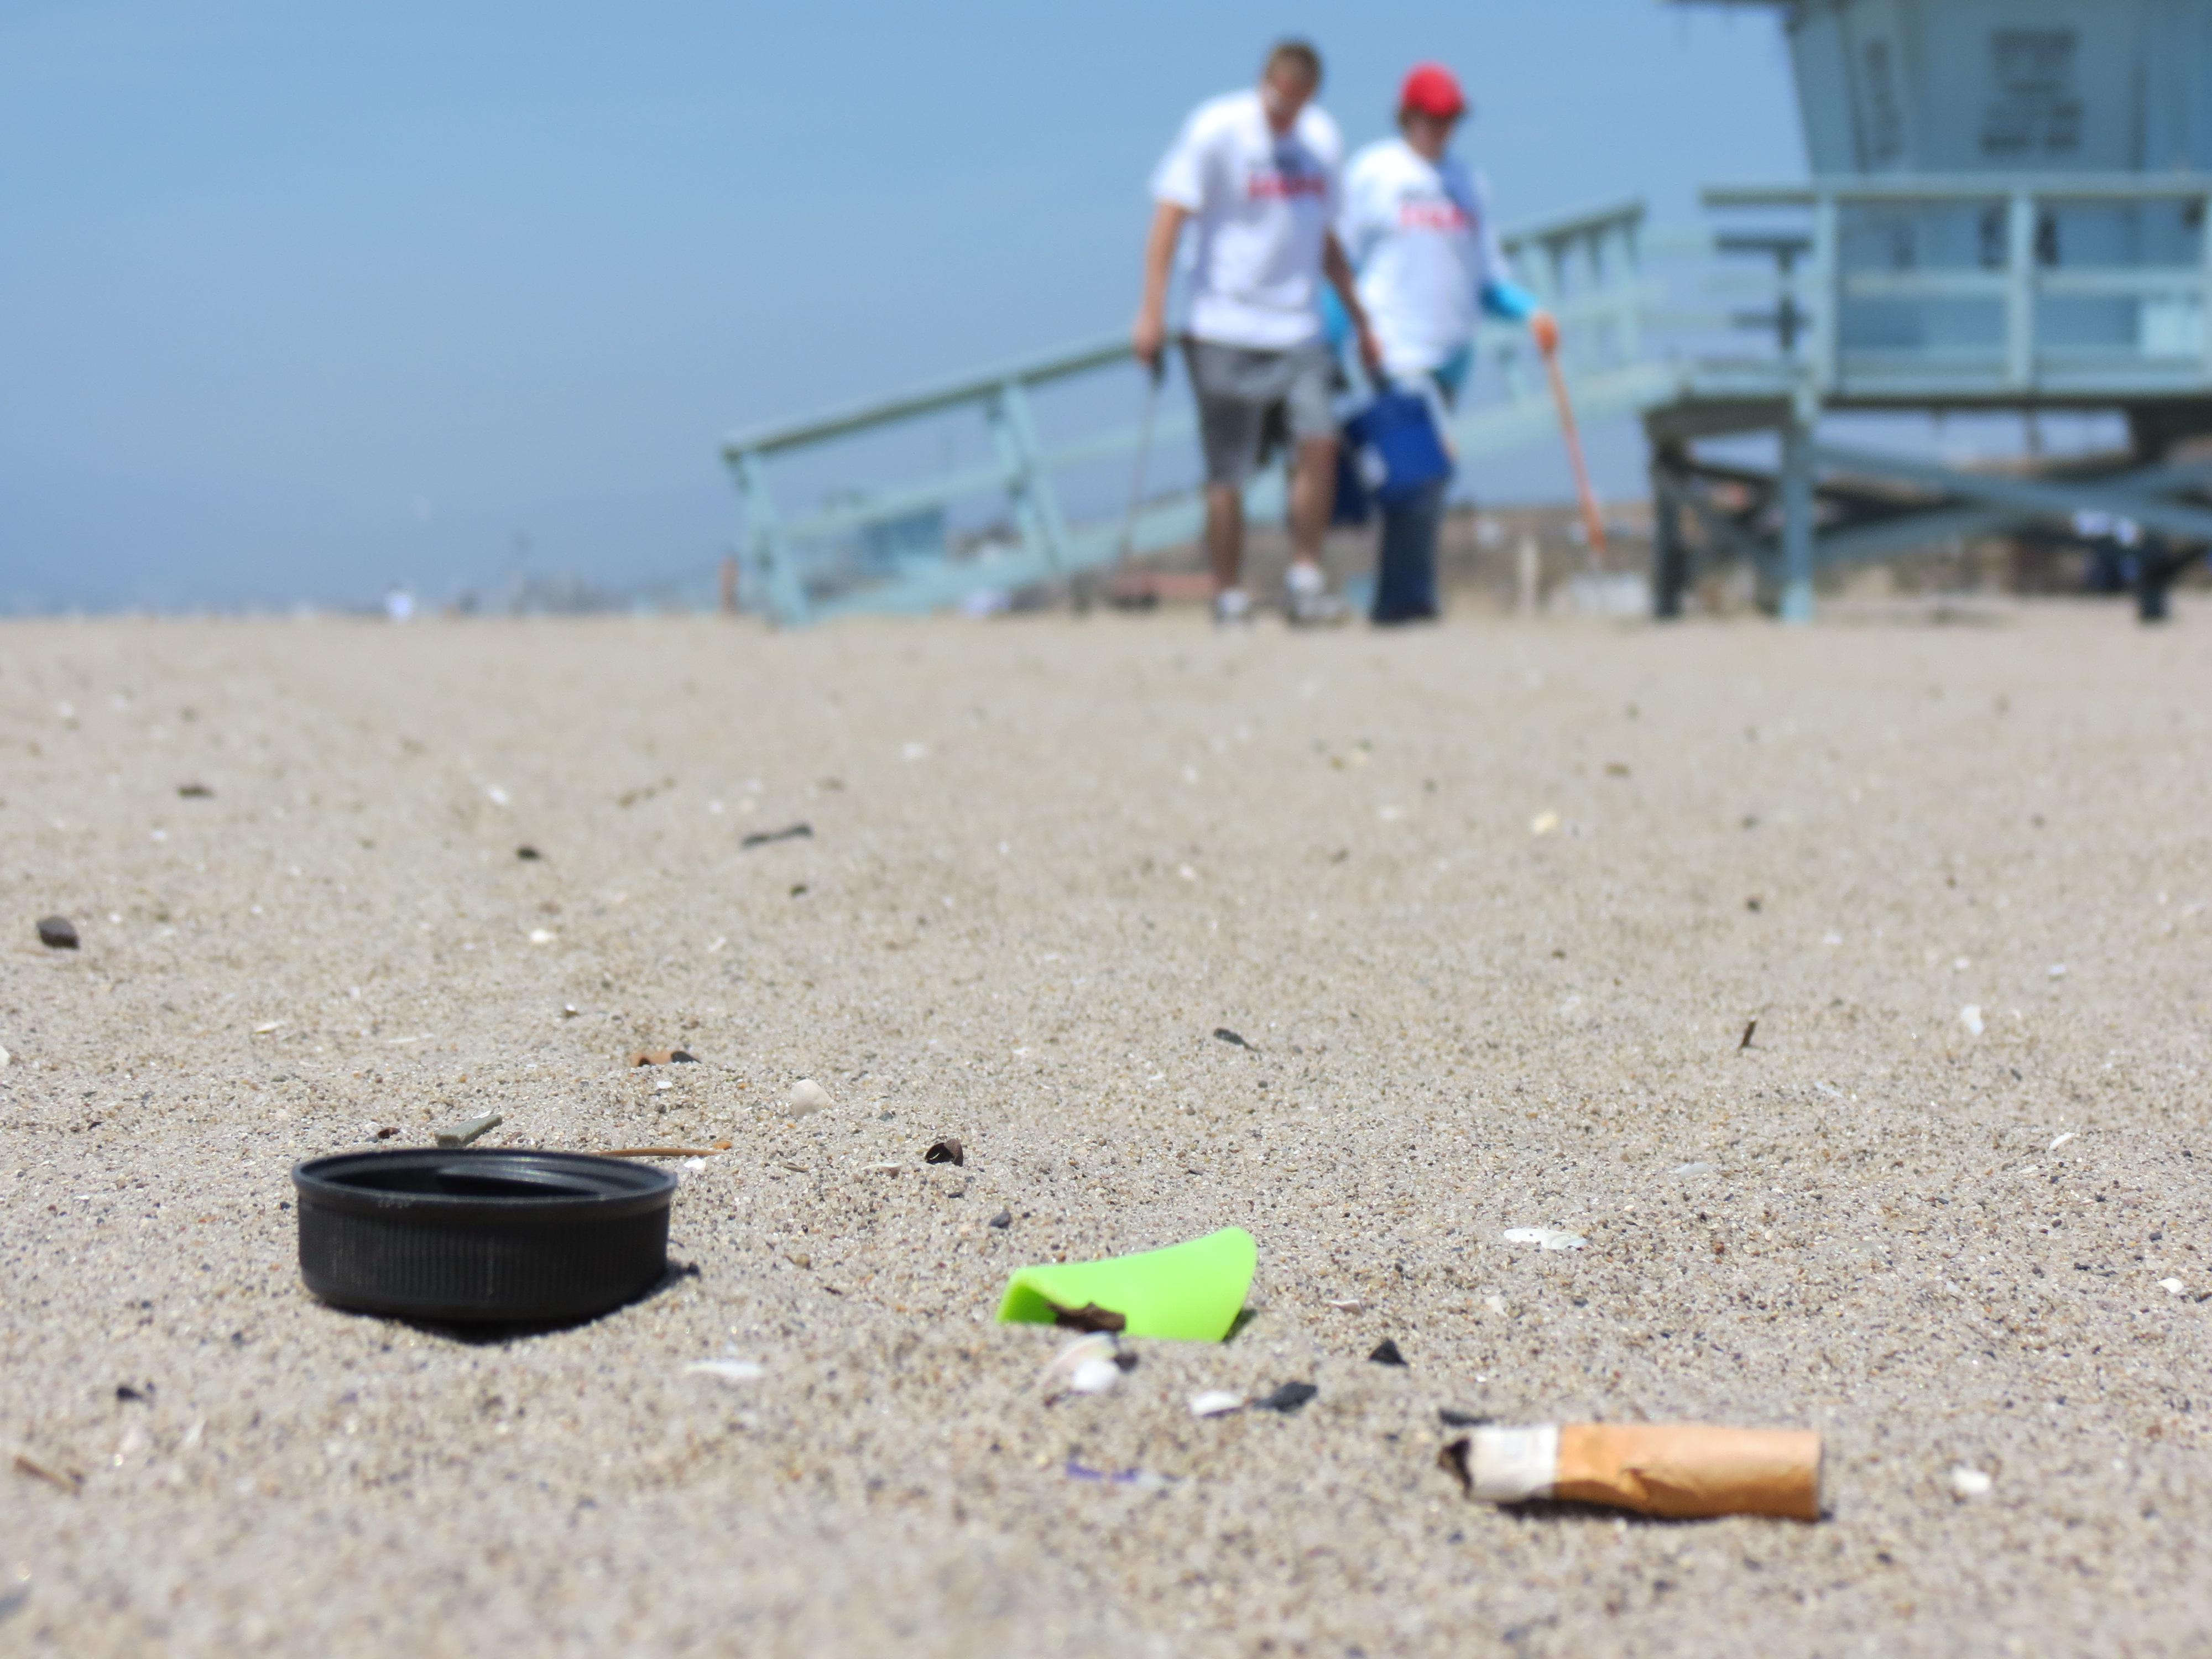 beach cleanup heal the bay ocean pollution environment stanford surfing